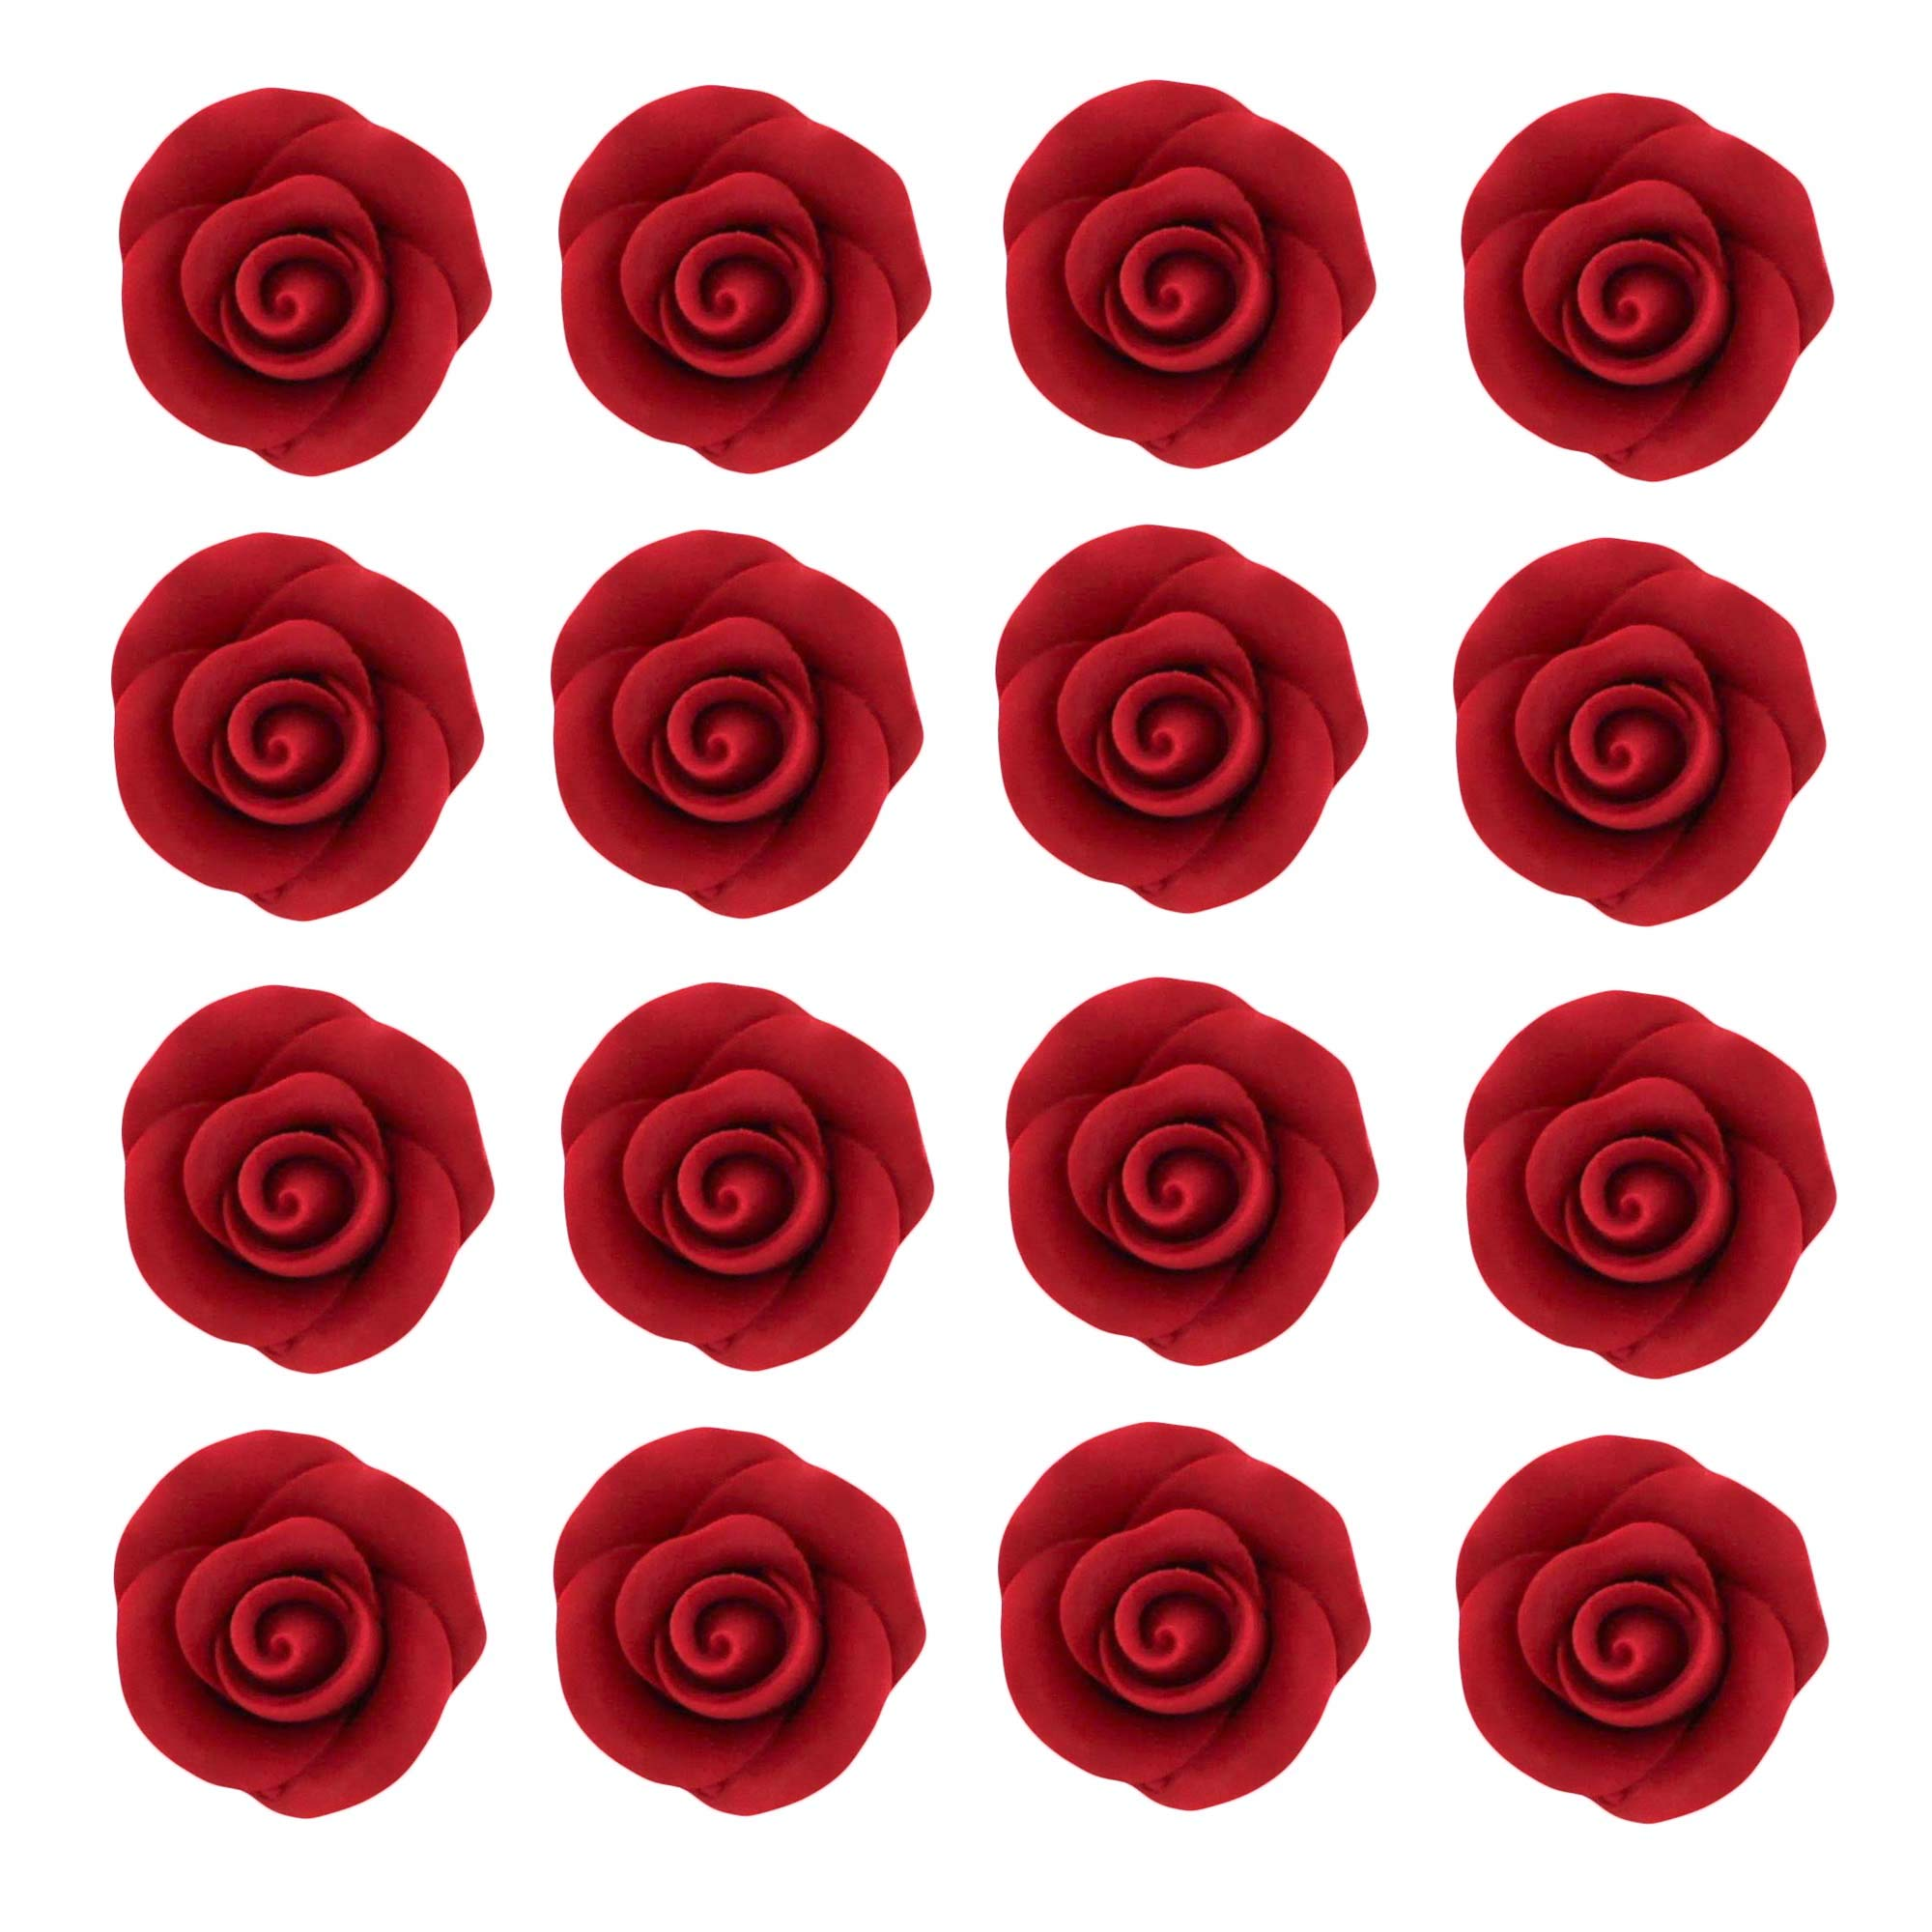 Rose Premium Candy Red, Unwired, Small 32 Count by Chef Alan Select